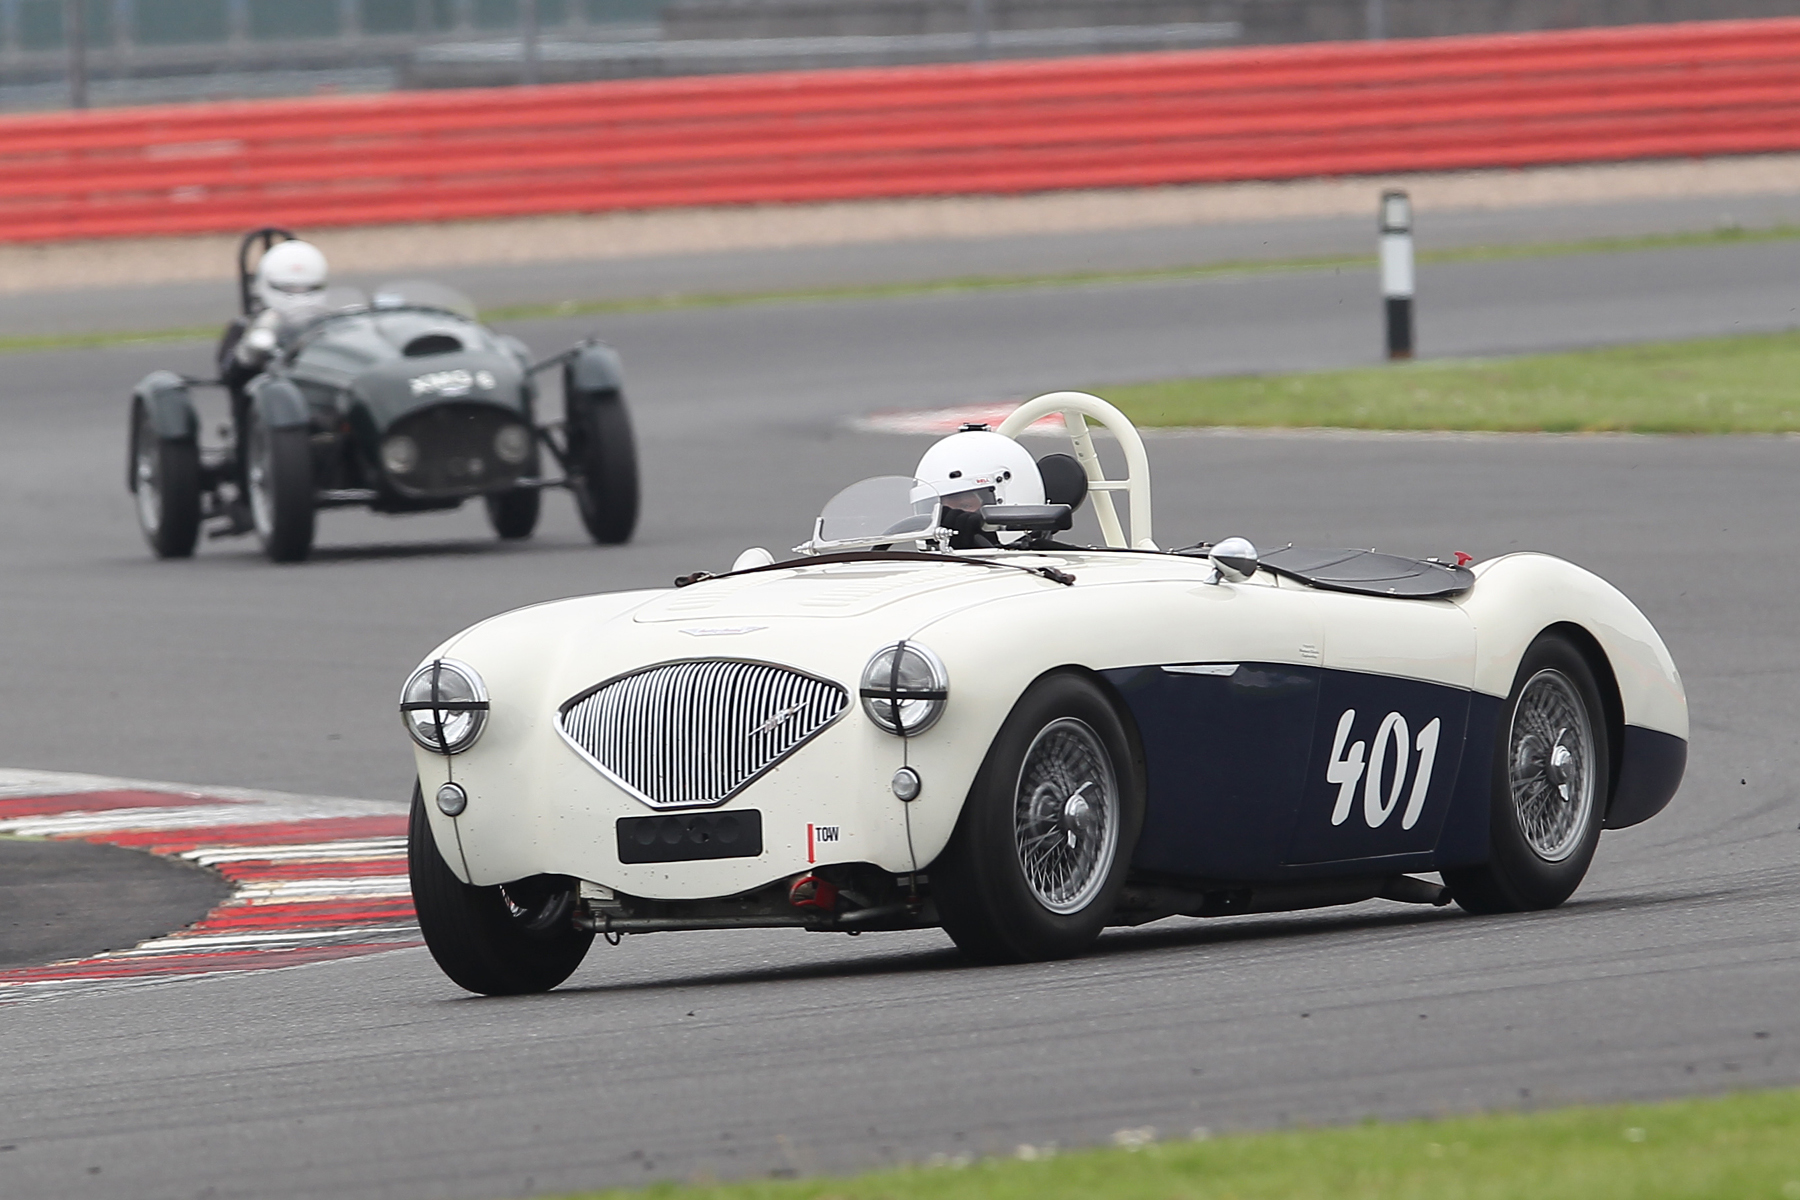 Jason Harris in the first non Elite home, but only just,  in his Austin Healey 100/4                                  Photo - Mick Walker